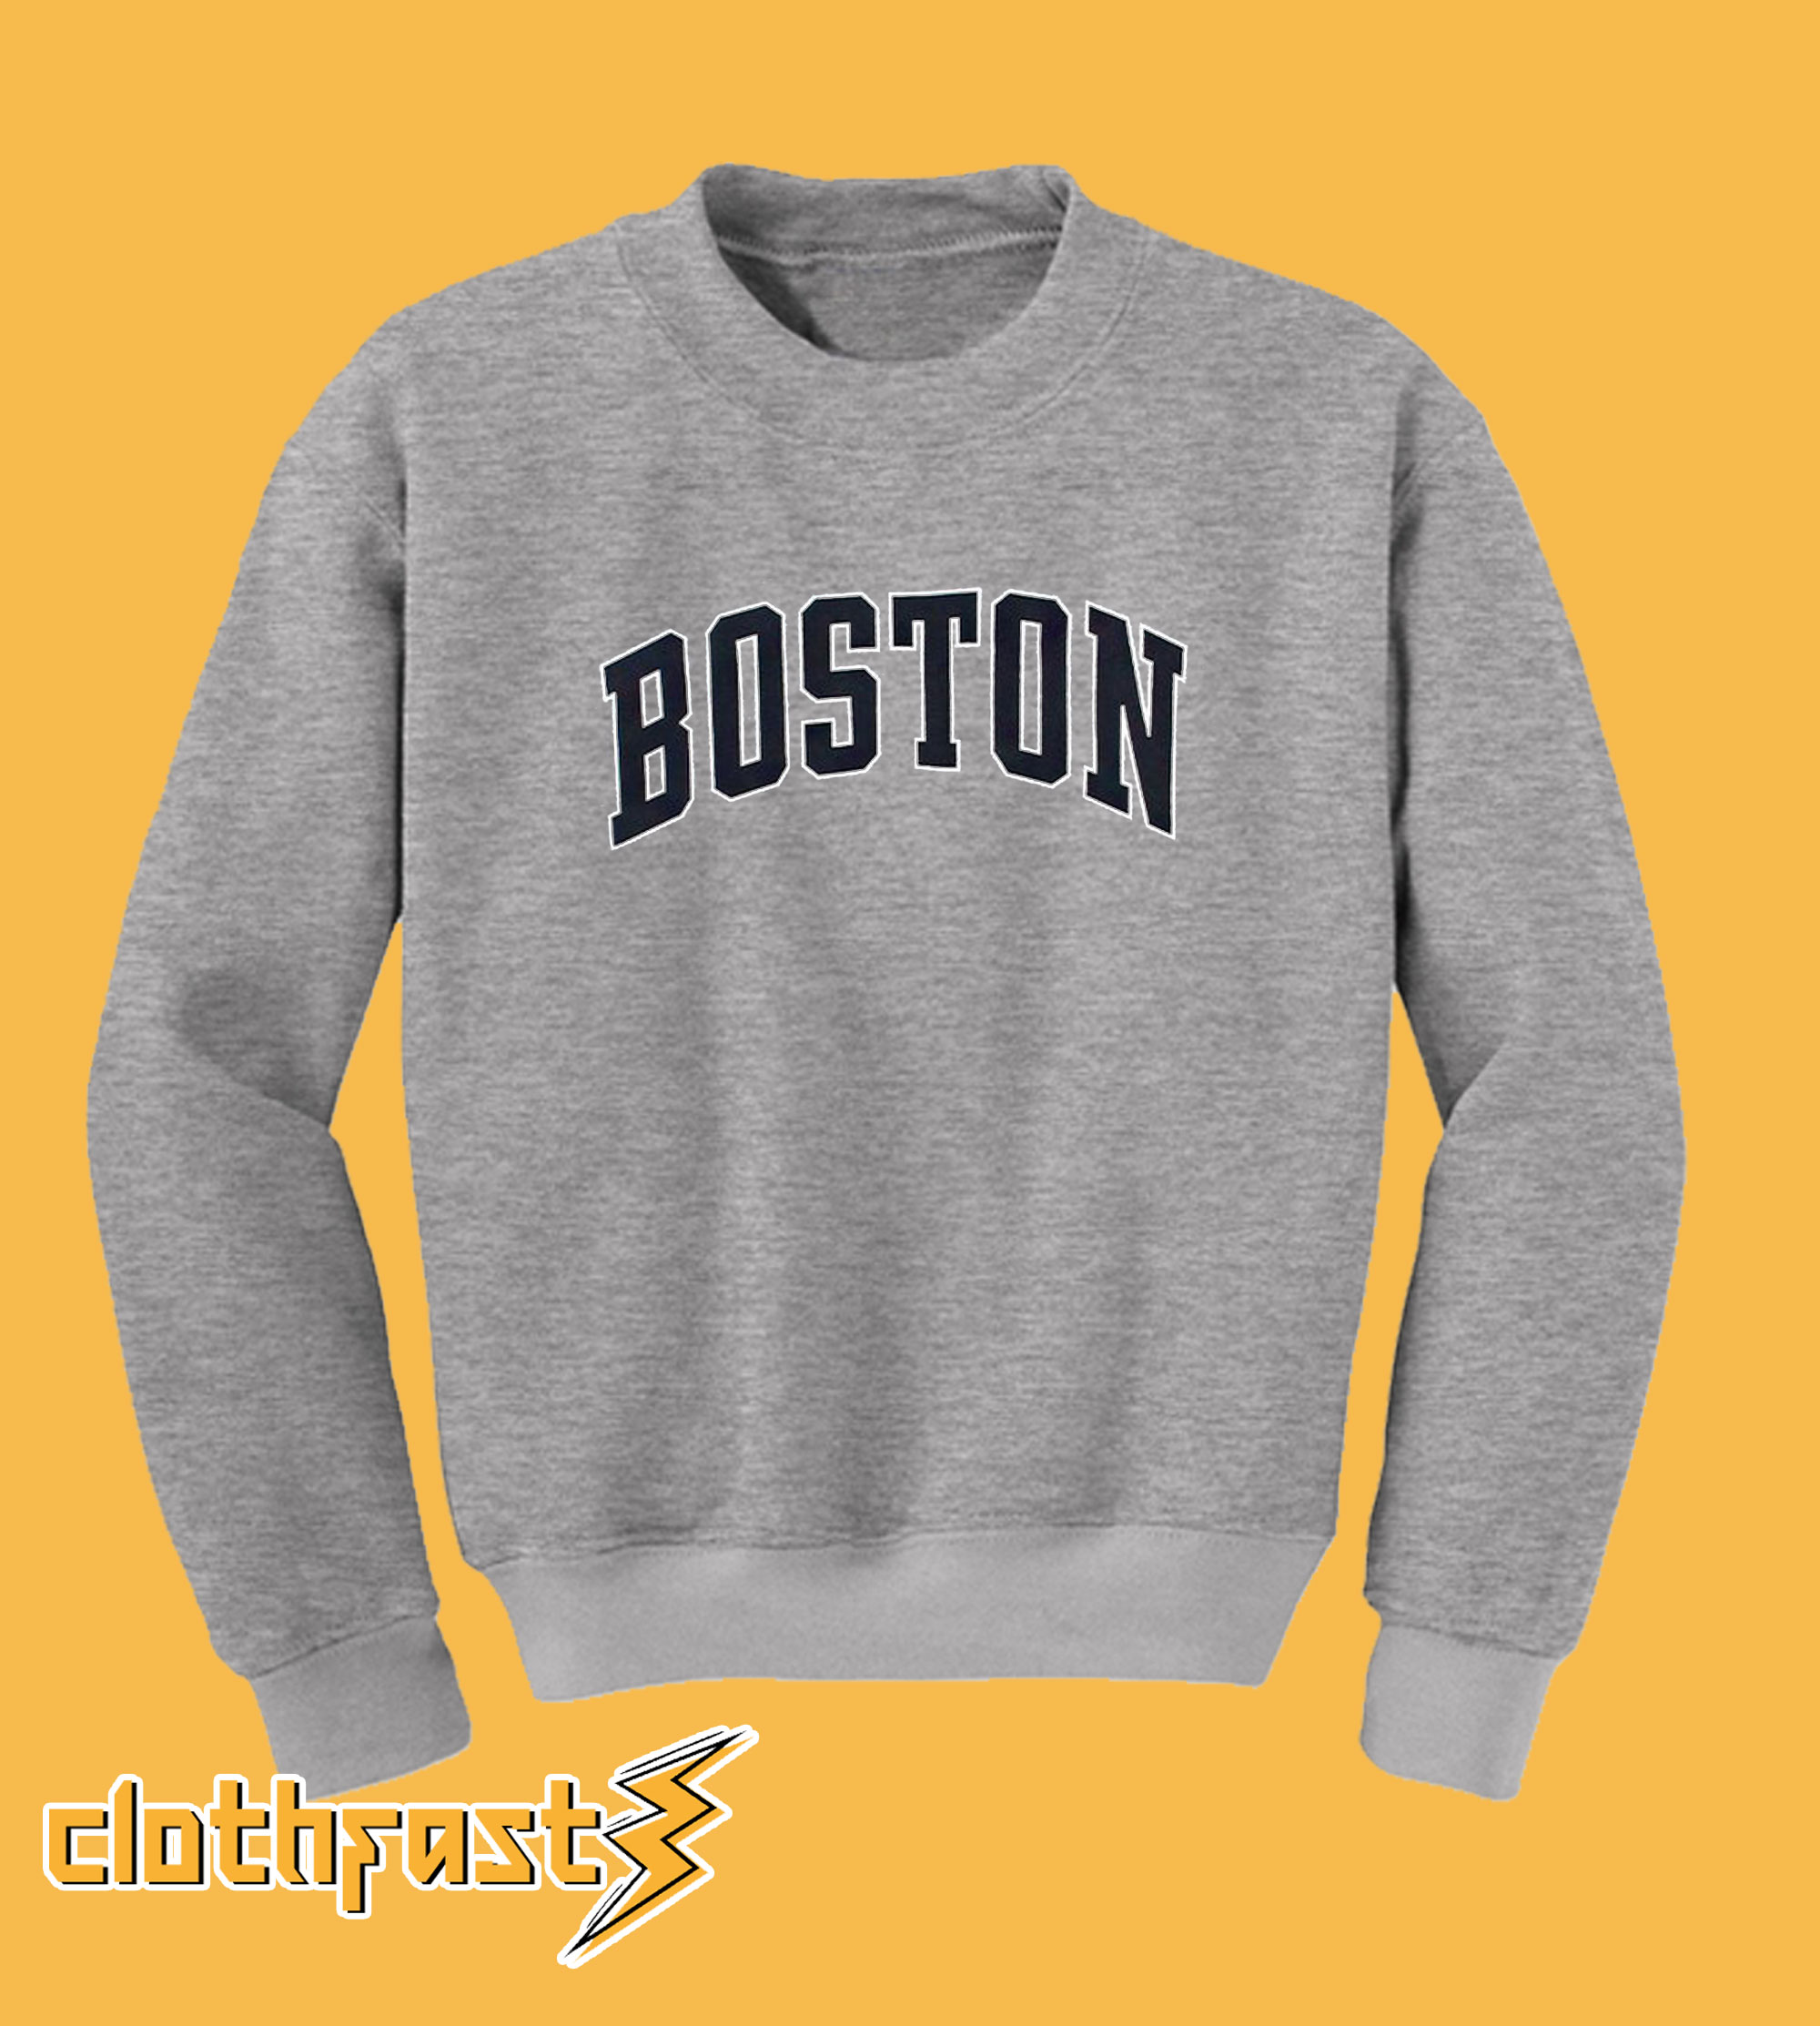 Boston Grey Sweatshirt